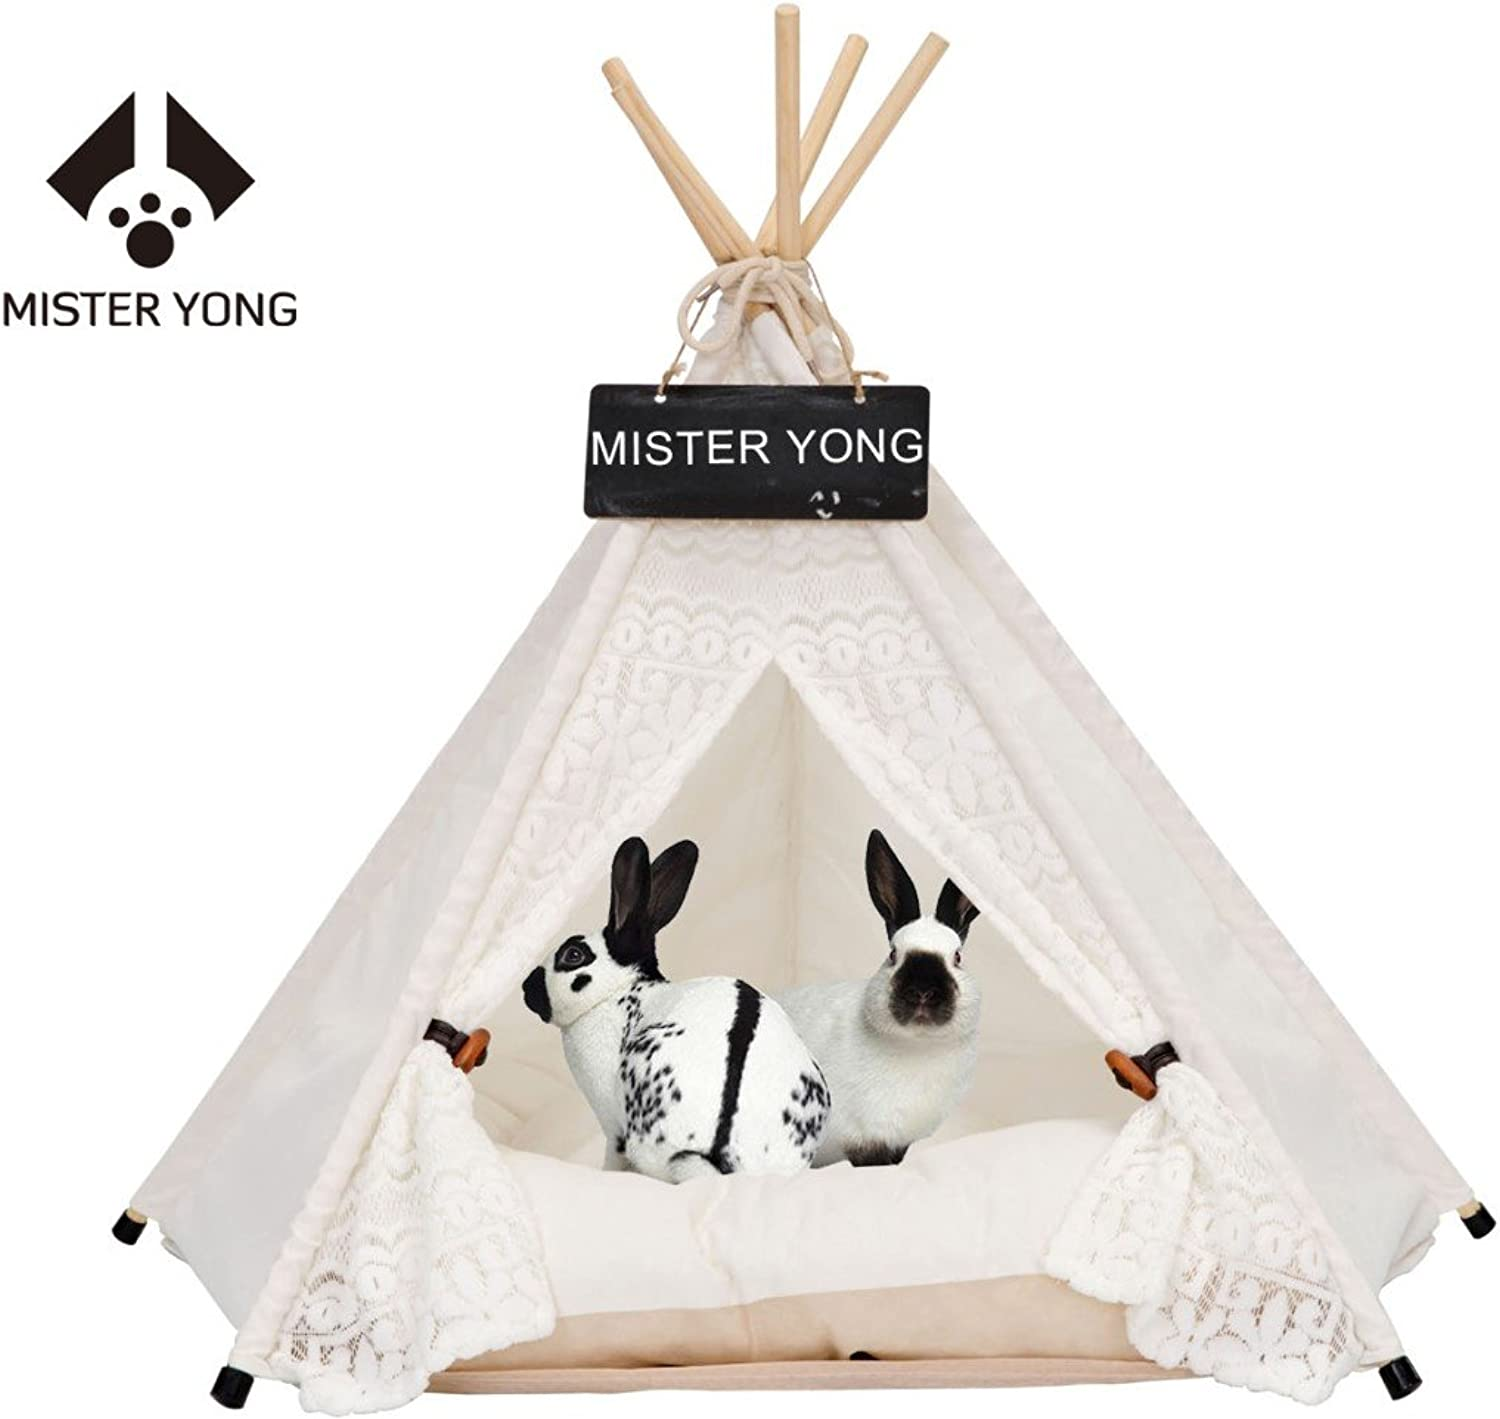 Pet Tents Teepee Tents for Dog and Cat, Portable Teepee Tents House Bed for Pets, Beige (L)